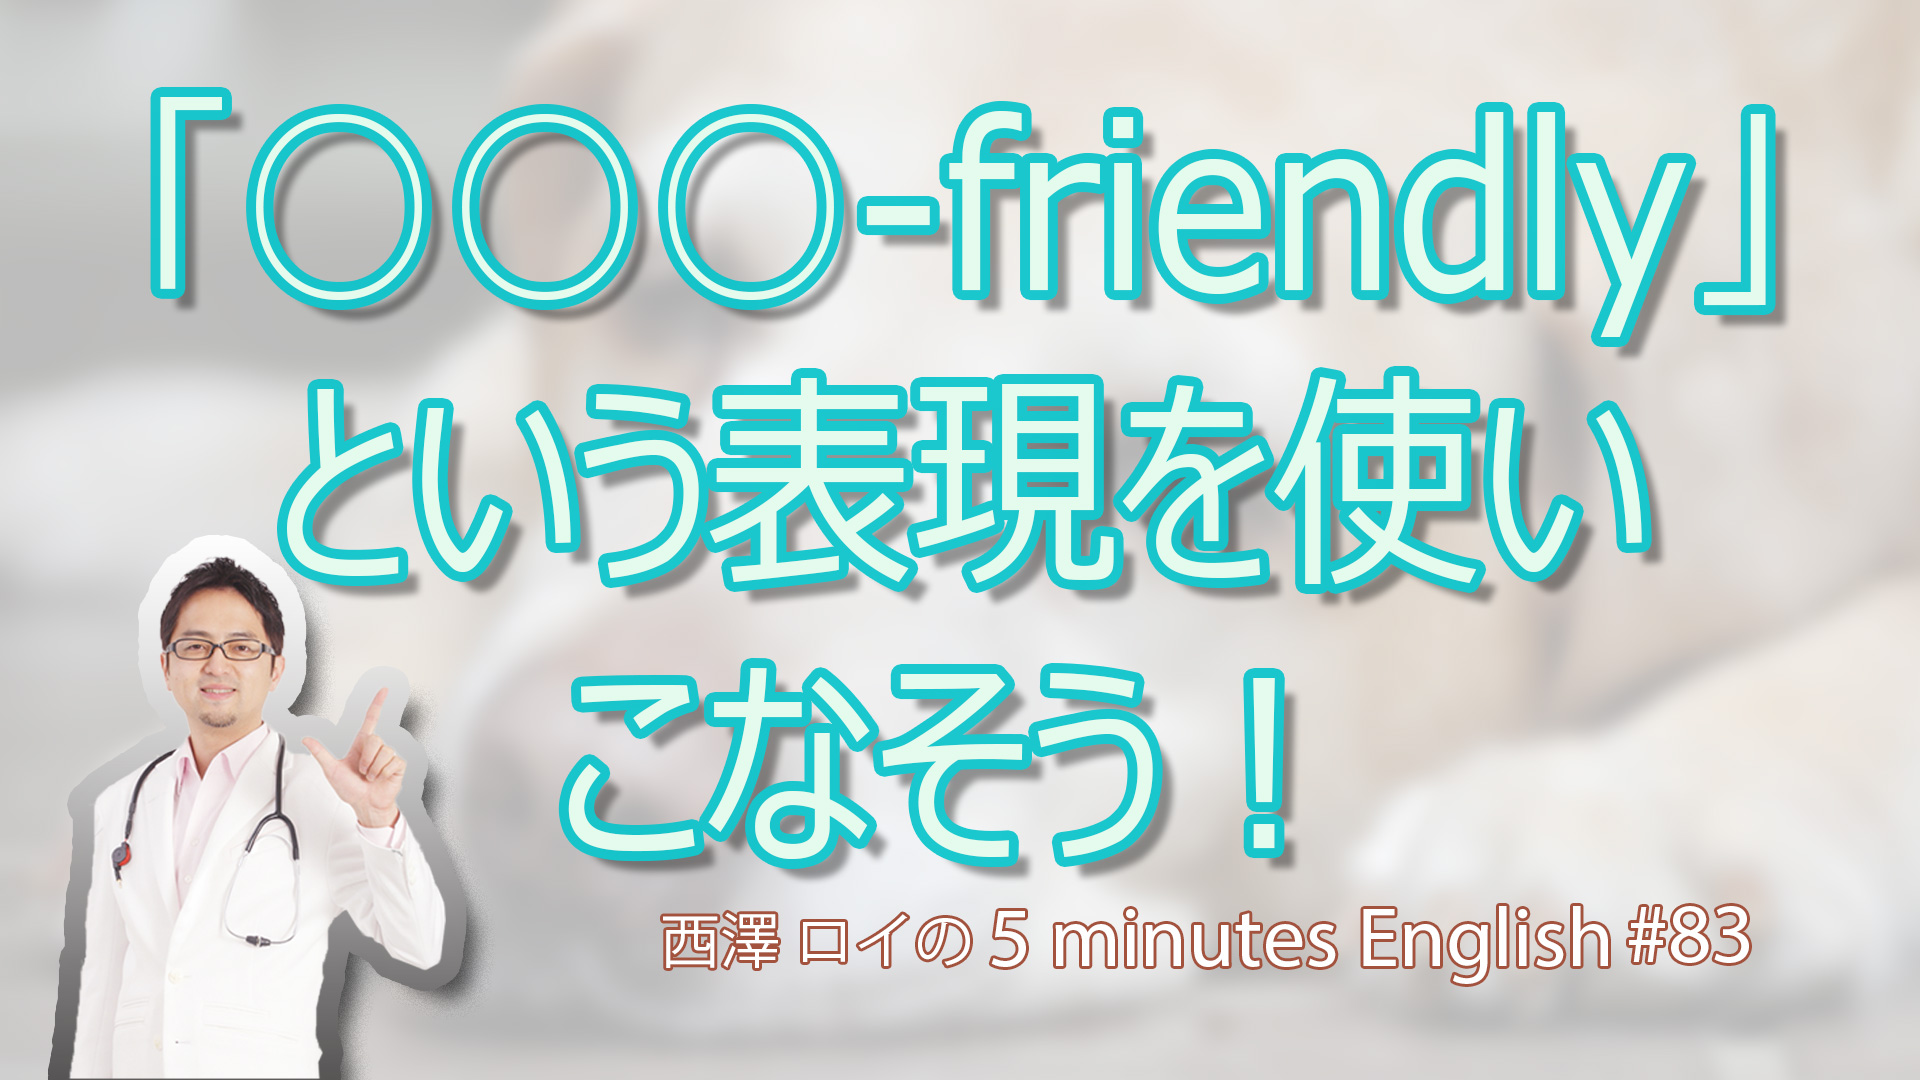 「dog-friendly」「eco-friendly」って意味分かりますか?【#83 5 Minutes English】